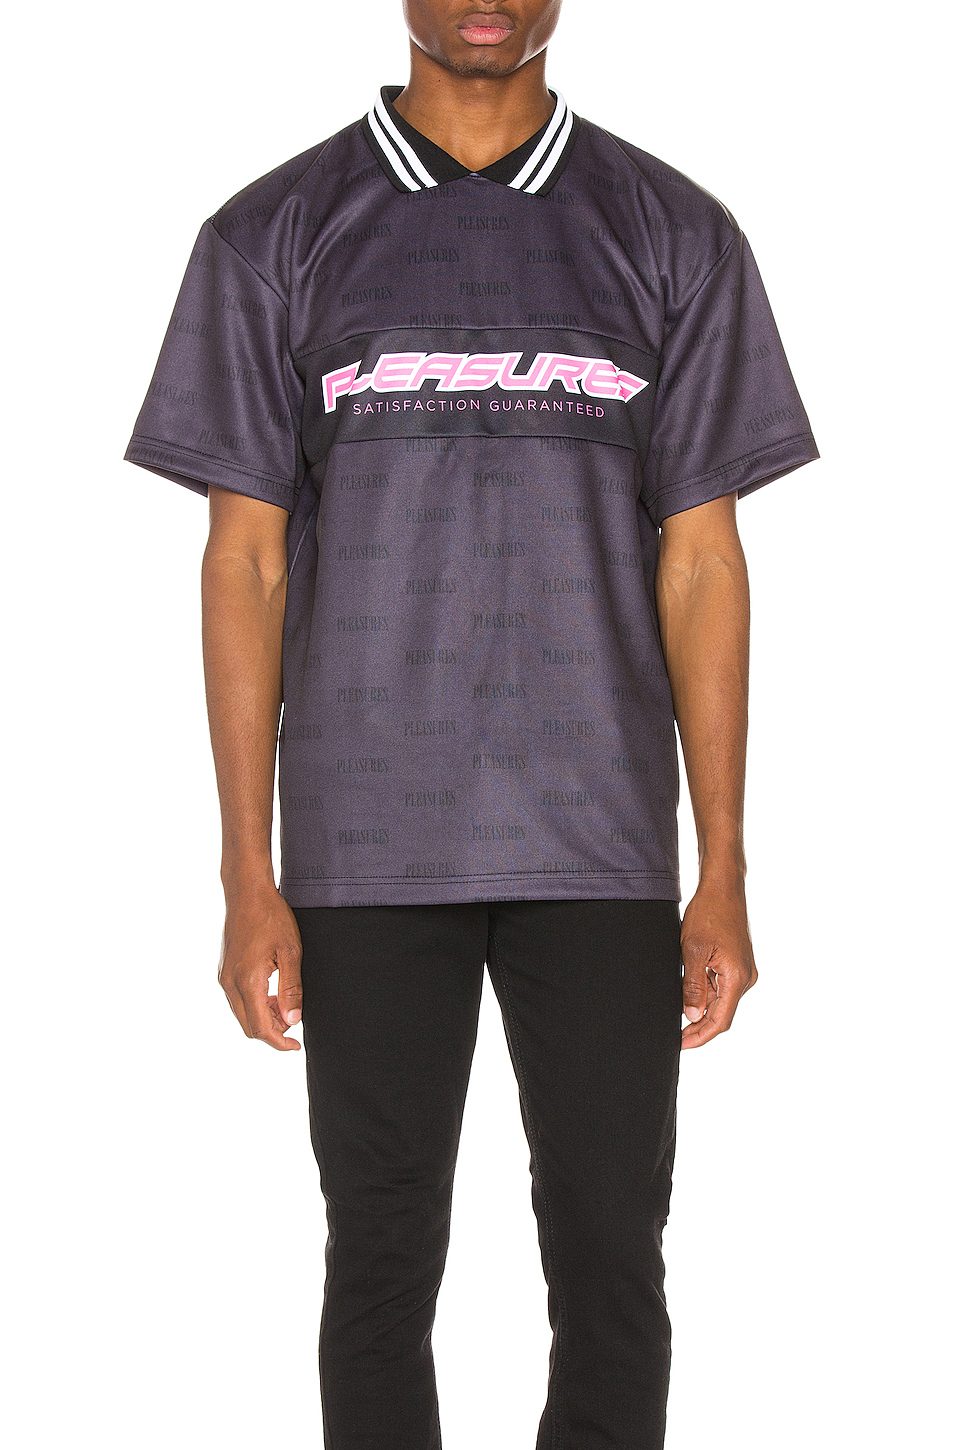 Pleasures Satisfaction Jersey